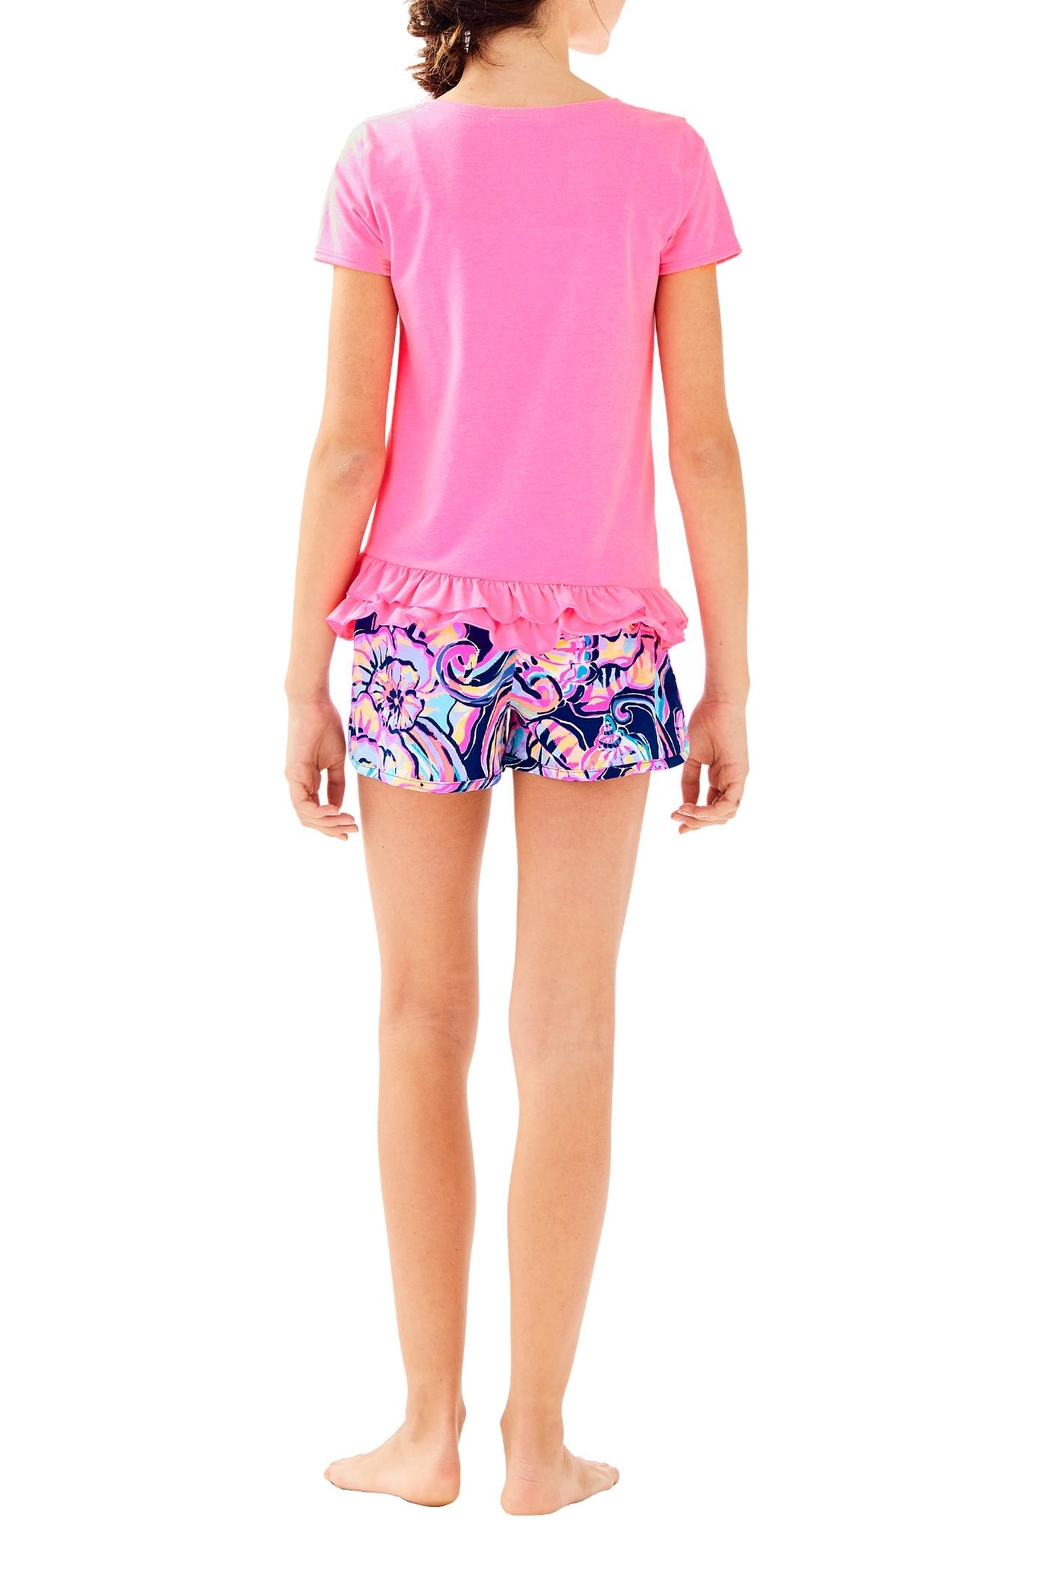 Lilly Pulitzer Girls Leightan Top - Back Cropped Image